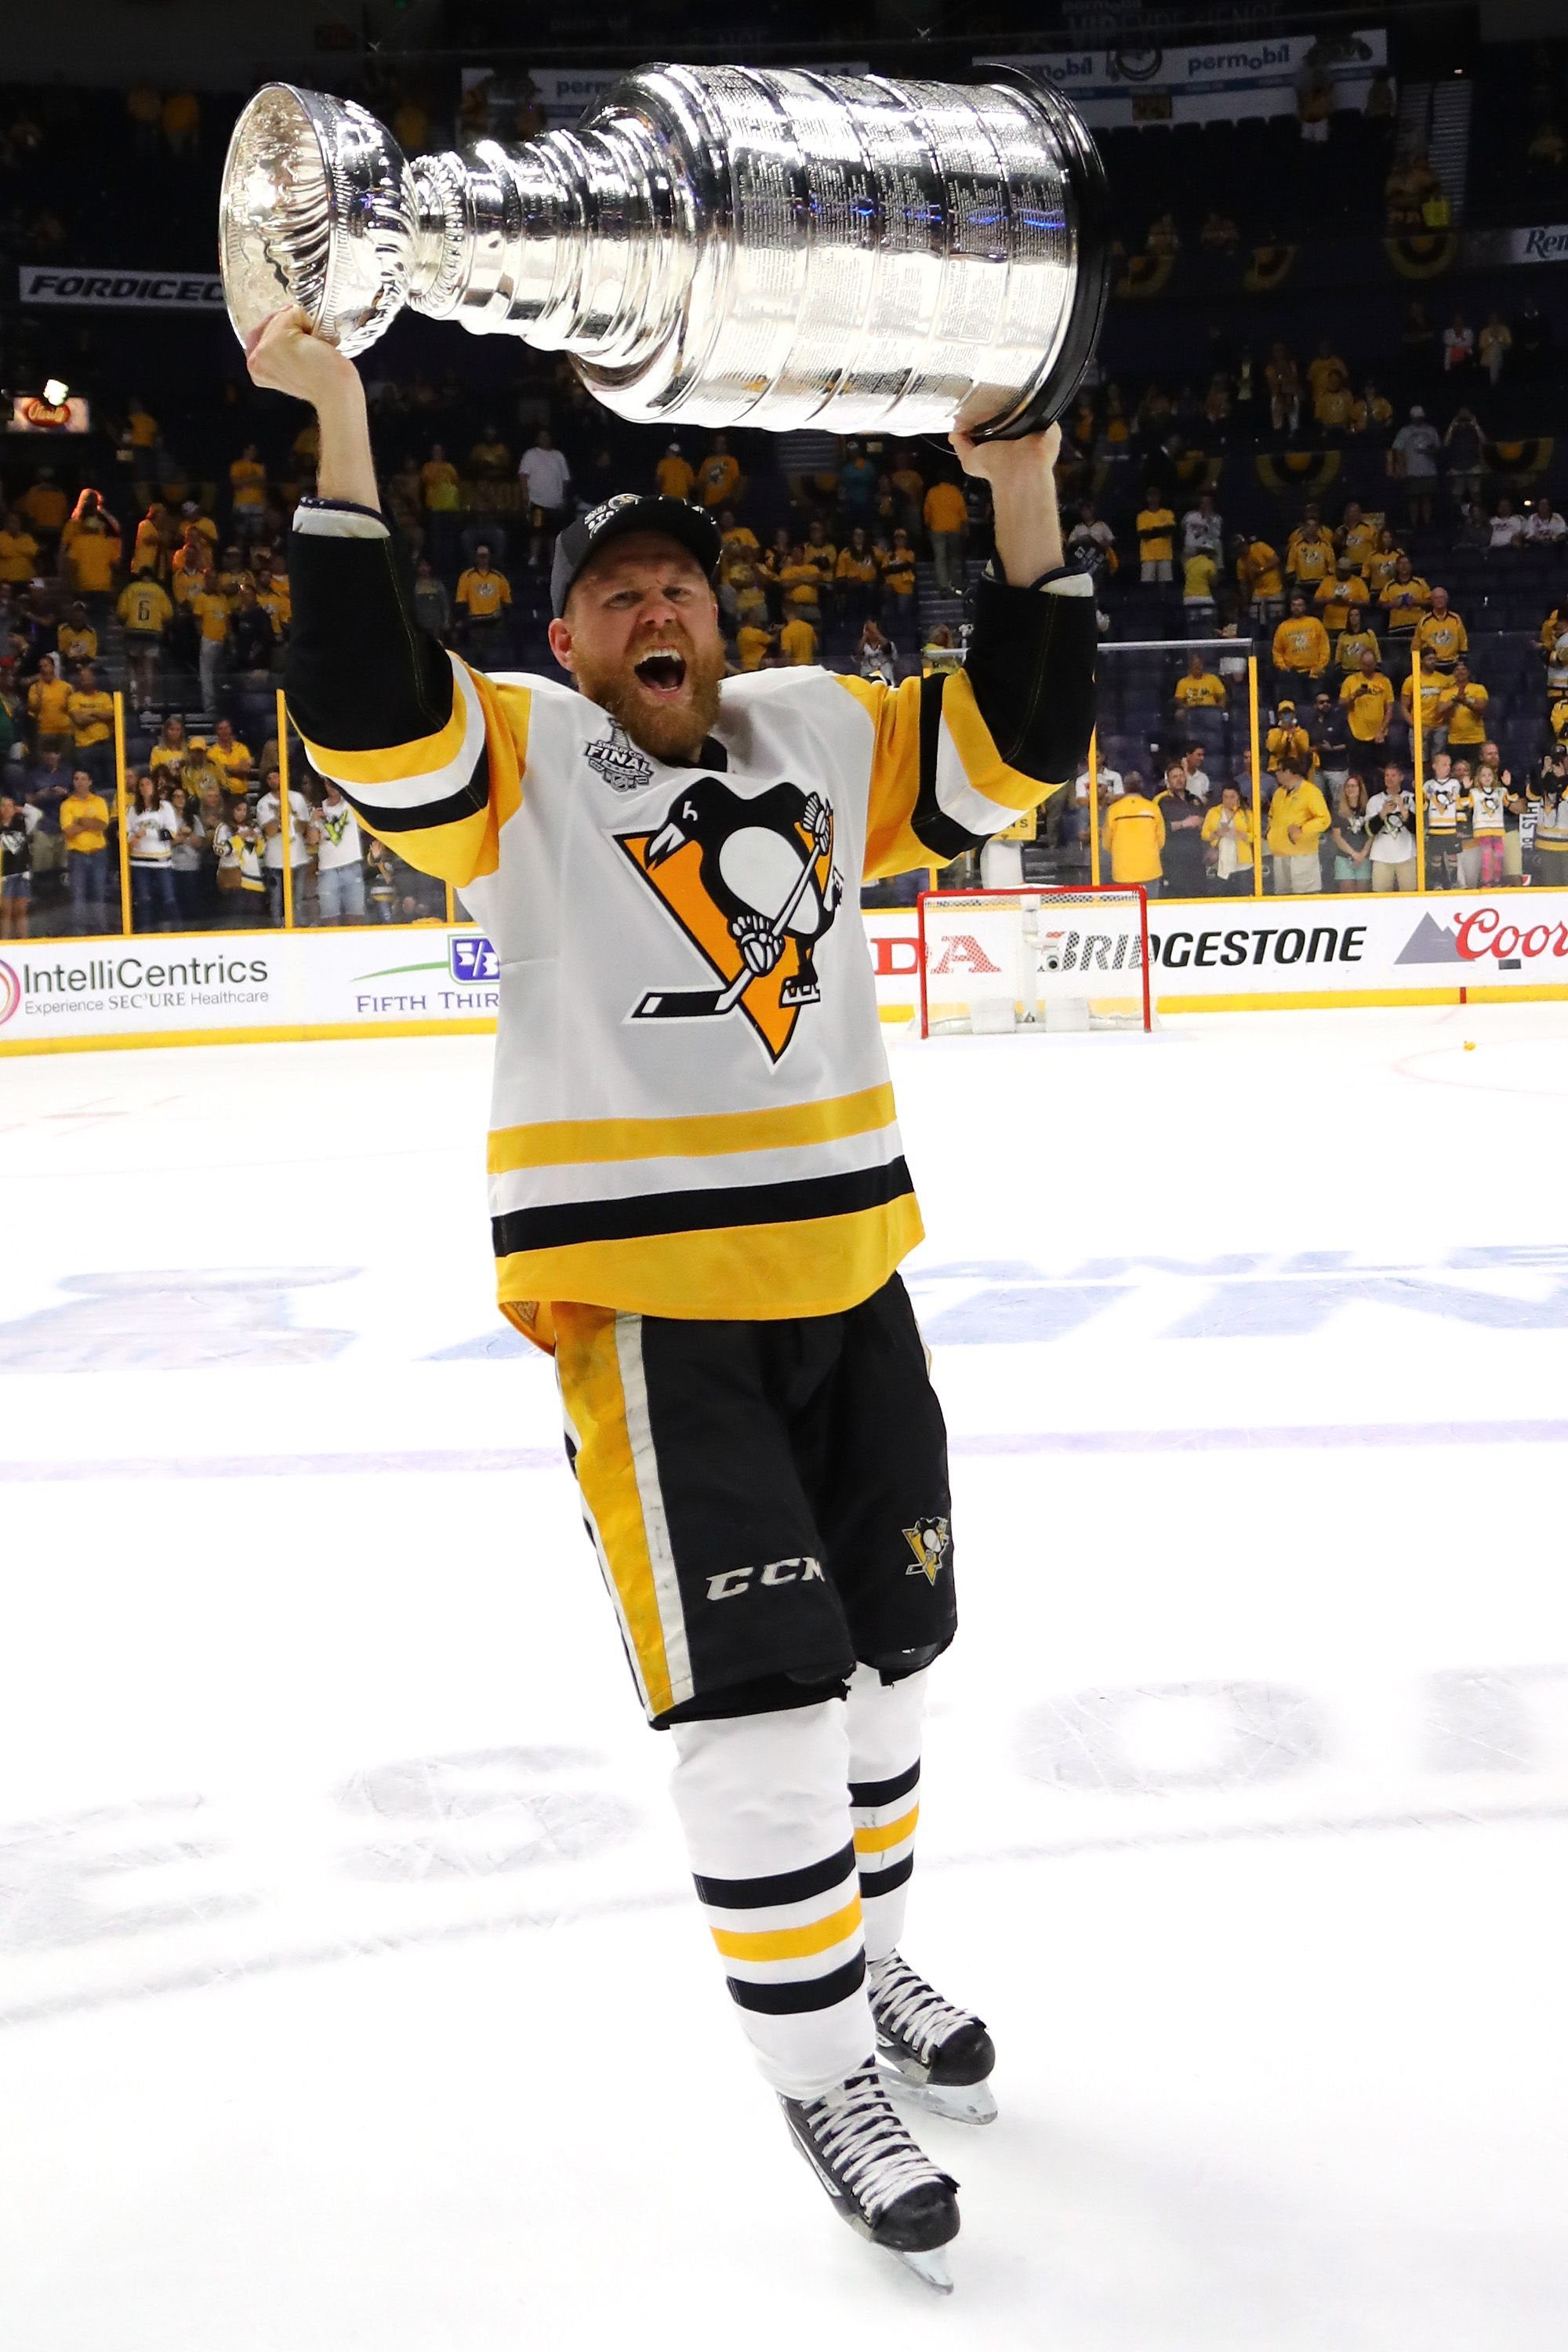 2017 Stanley Cup Champion - Patric Hornqvist. Recorded ...